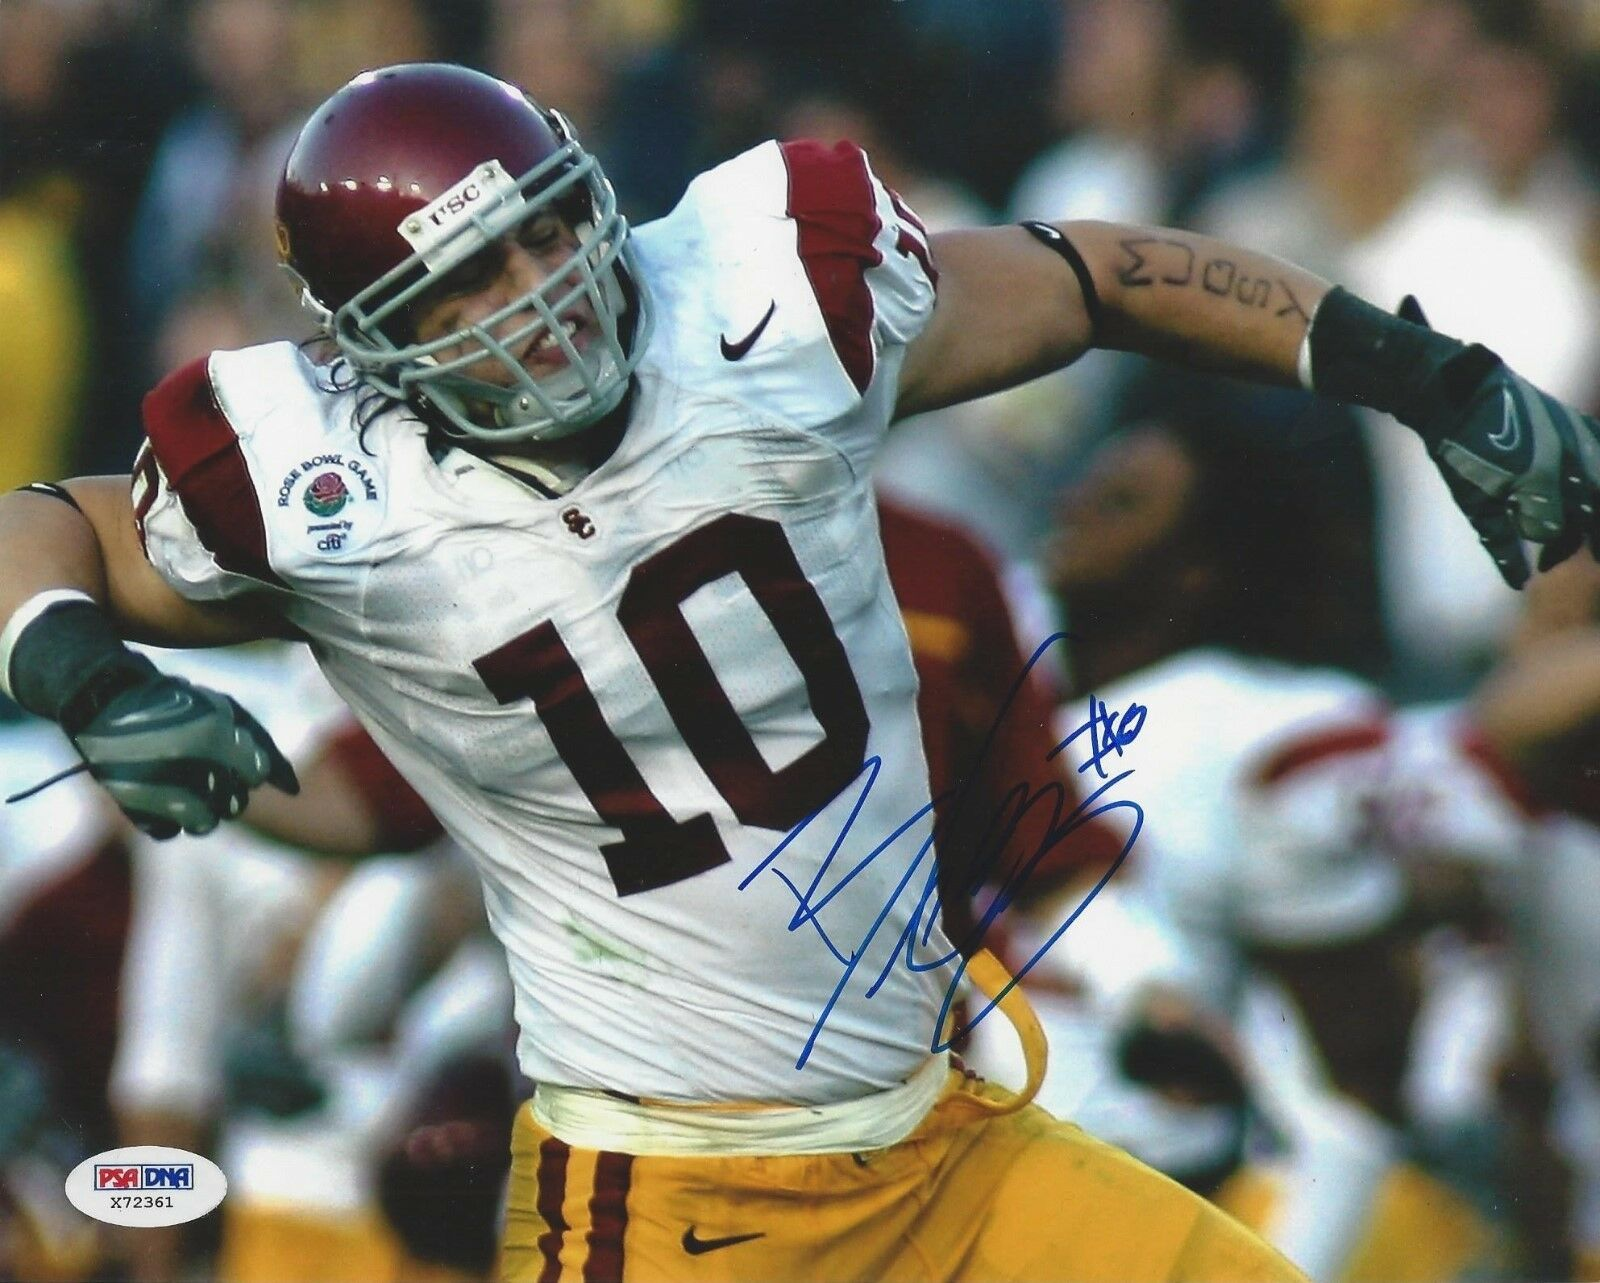 Brian Cushing USC Trojans Signed 8x10 Photo - PSA/DNA # X72361